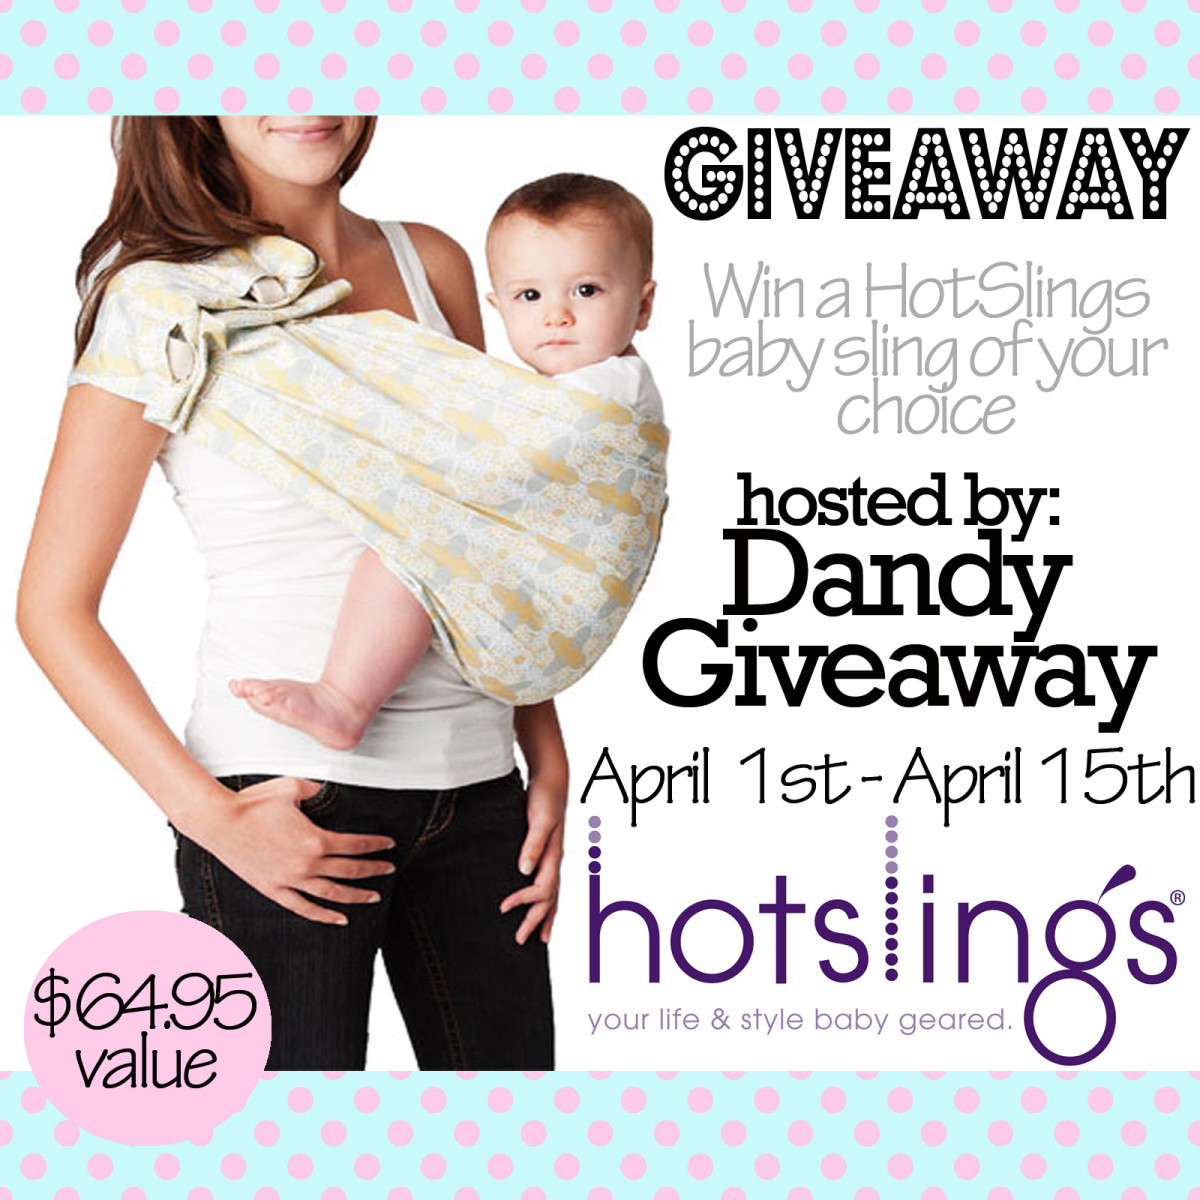 Hot Slings {Giveaway}